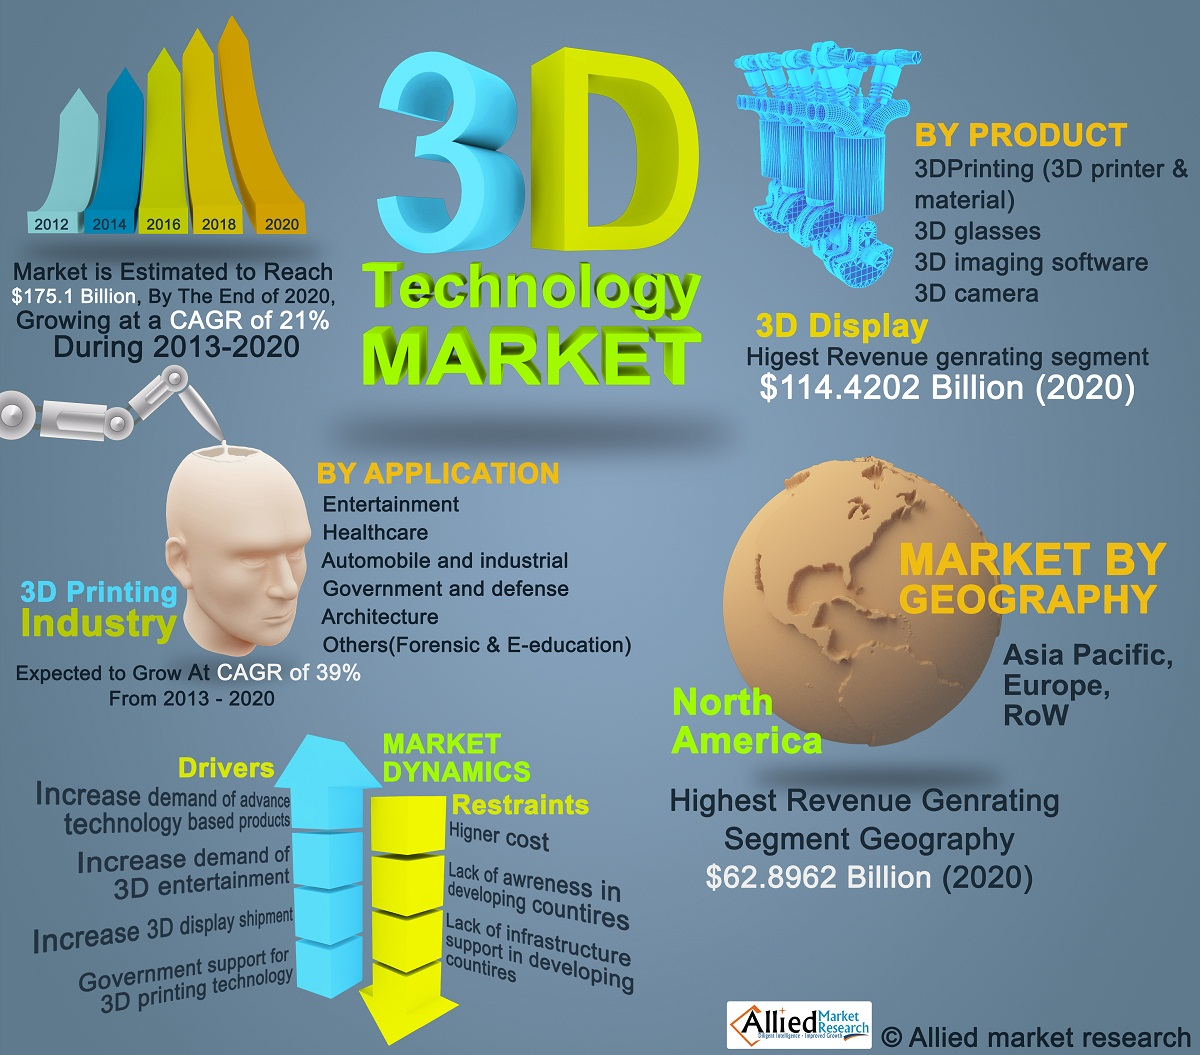 3d technology market is expected to Dubai plans to 3d print 25% of  dubai will build a quarter of its structures using 3d printing technology under a new  the 3d printing market is expected to be.